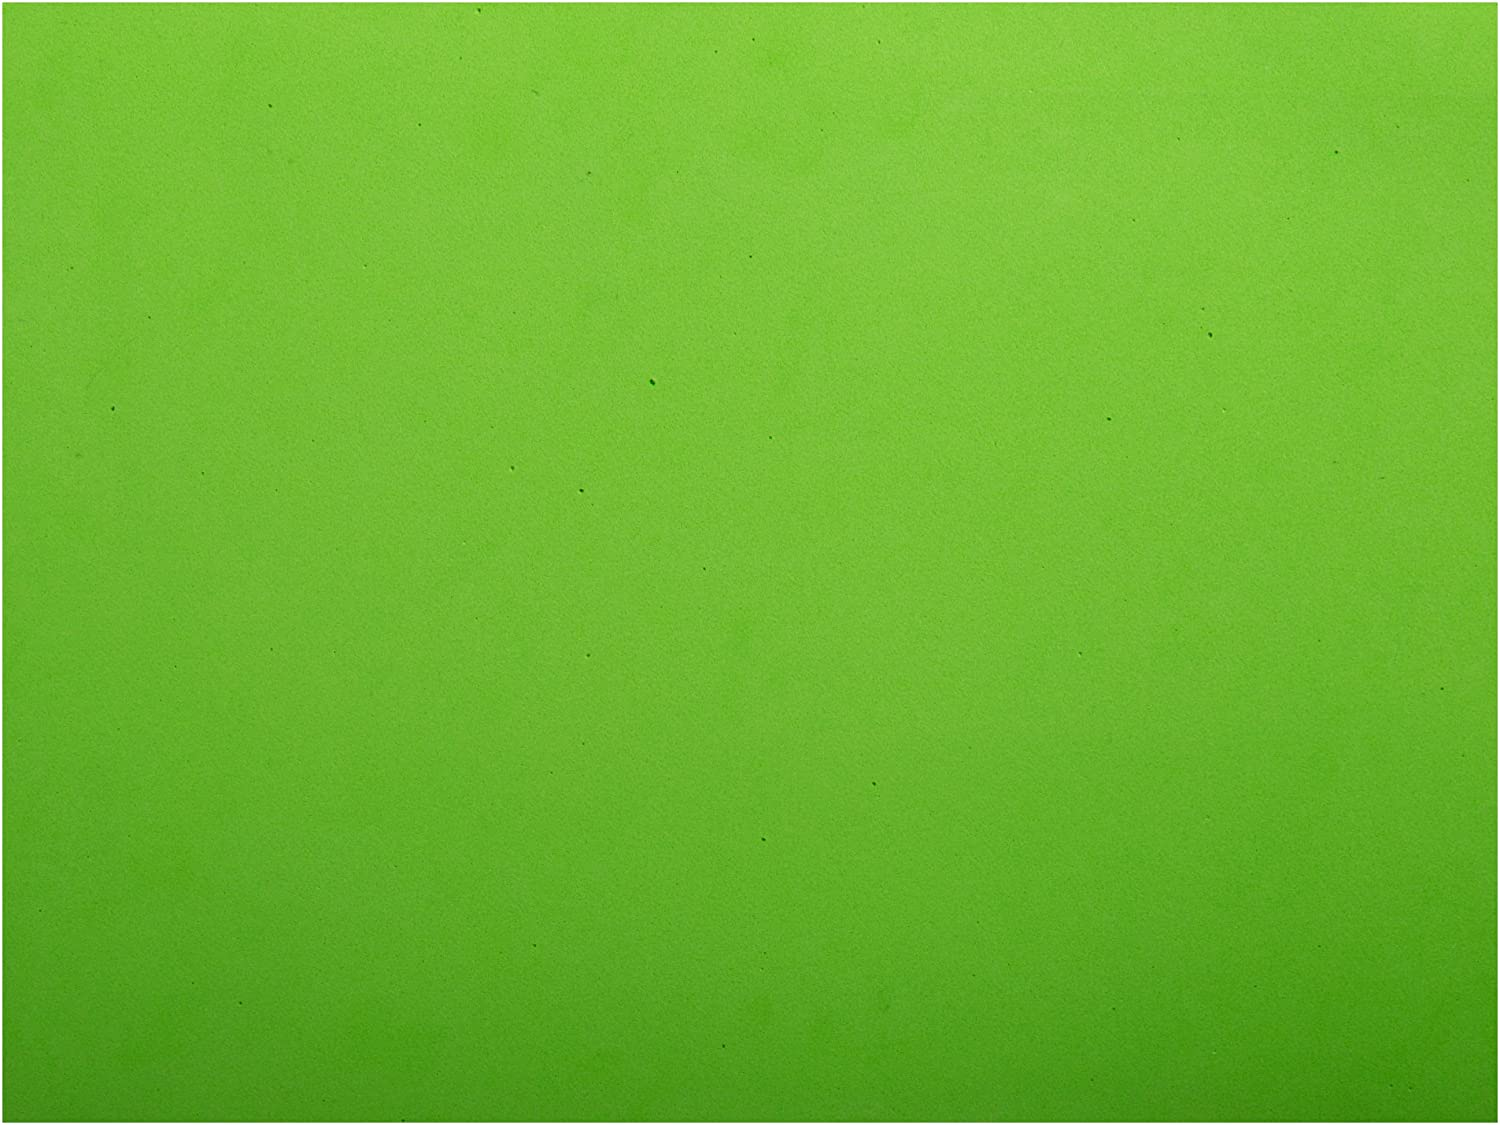 Lime Green EVA Foam Sheets CTG 12 Pieces 9 x 12 inches